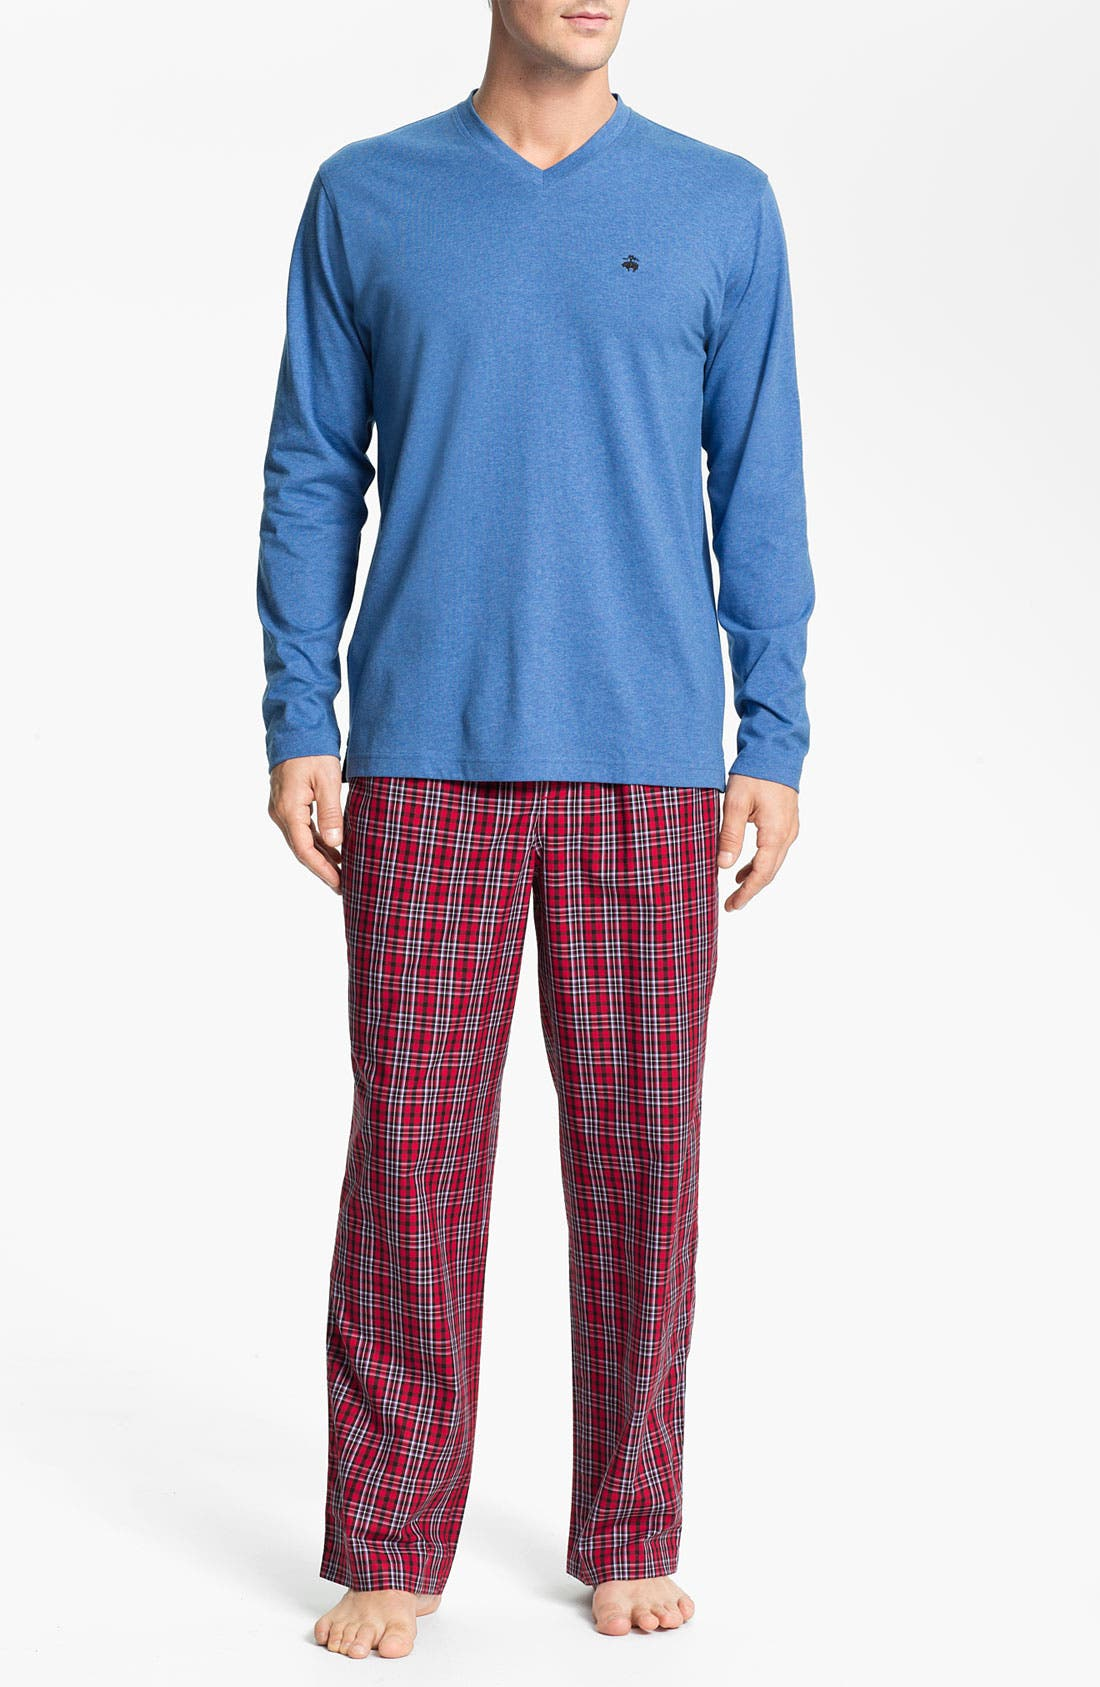 Main Image - Brooks Brothers Cotton Pajama Set